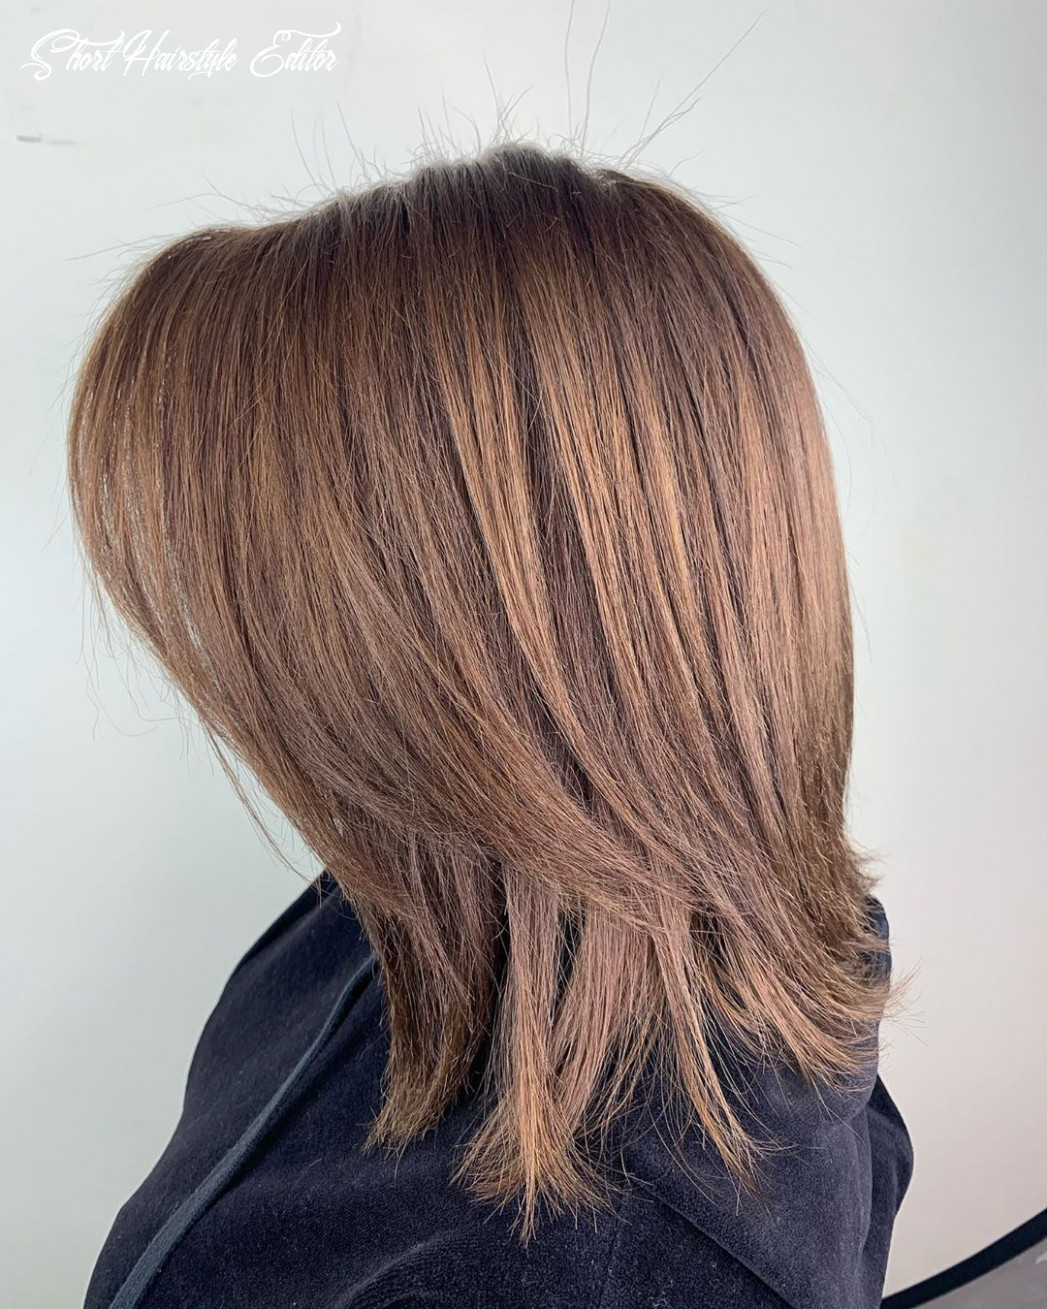 Short hairstyles short haircut trends & ideas for women short hairstyle editor